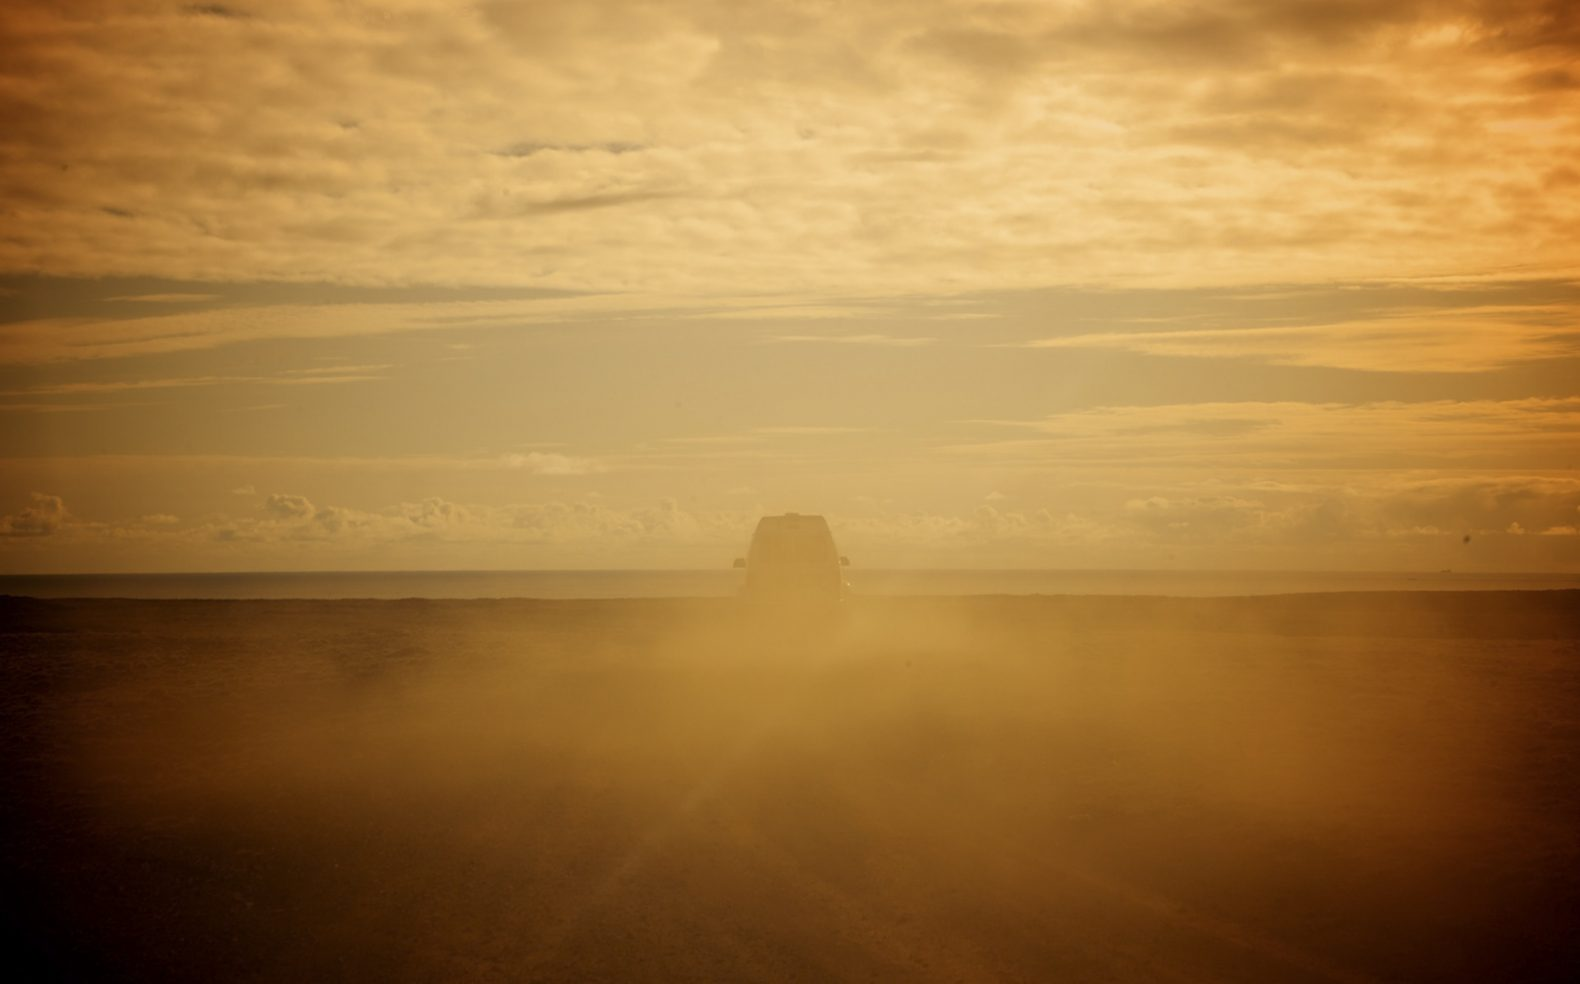 Professional travel photograph of a van obscured through swirling dirt while driving away on a dusty dirt road.